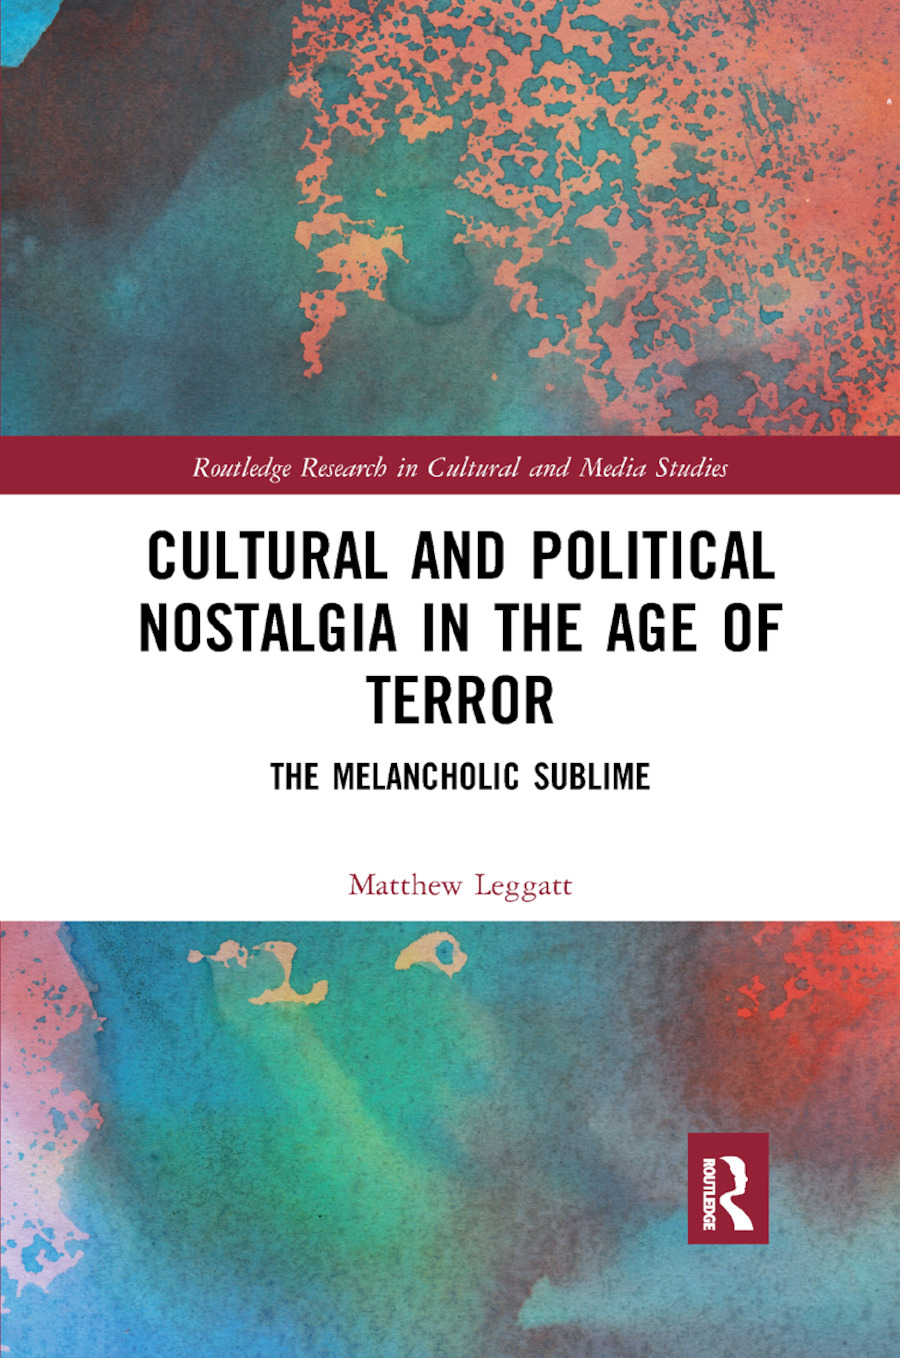 Cultural and Political Nostalgia in the Age of Terror: The Melancholic Sublime book cover